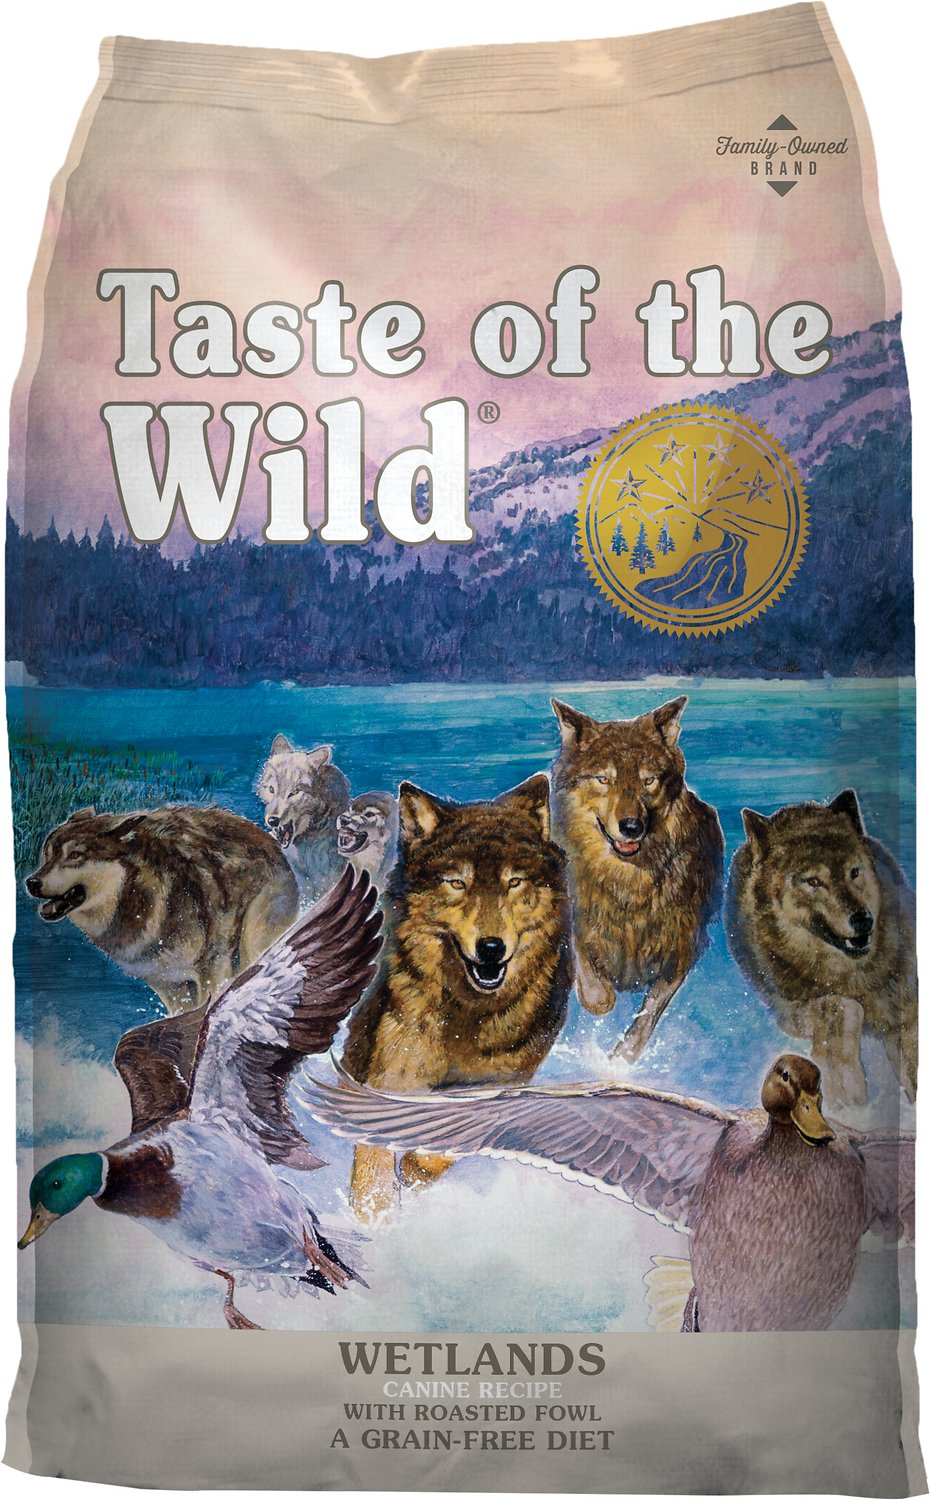 Taste Of Wild Dog Food >> Taste of the Wild Wetlands Grain-Free Dry Dog Food, 30-lb bag - Chewy.com